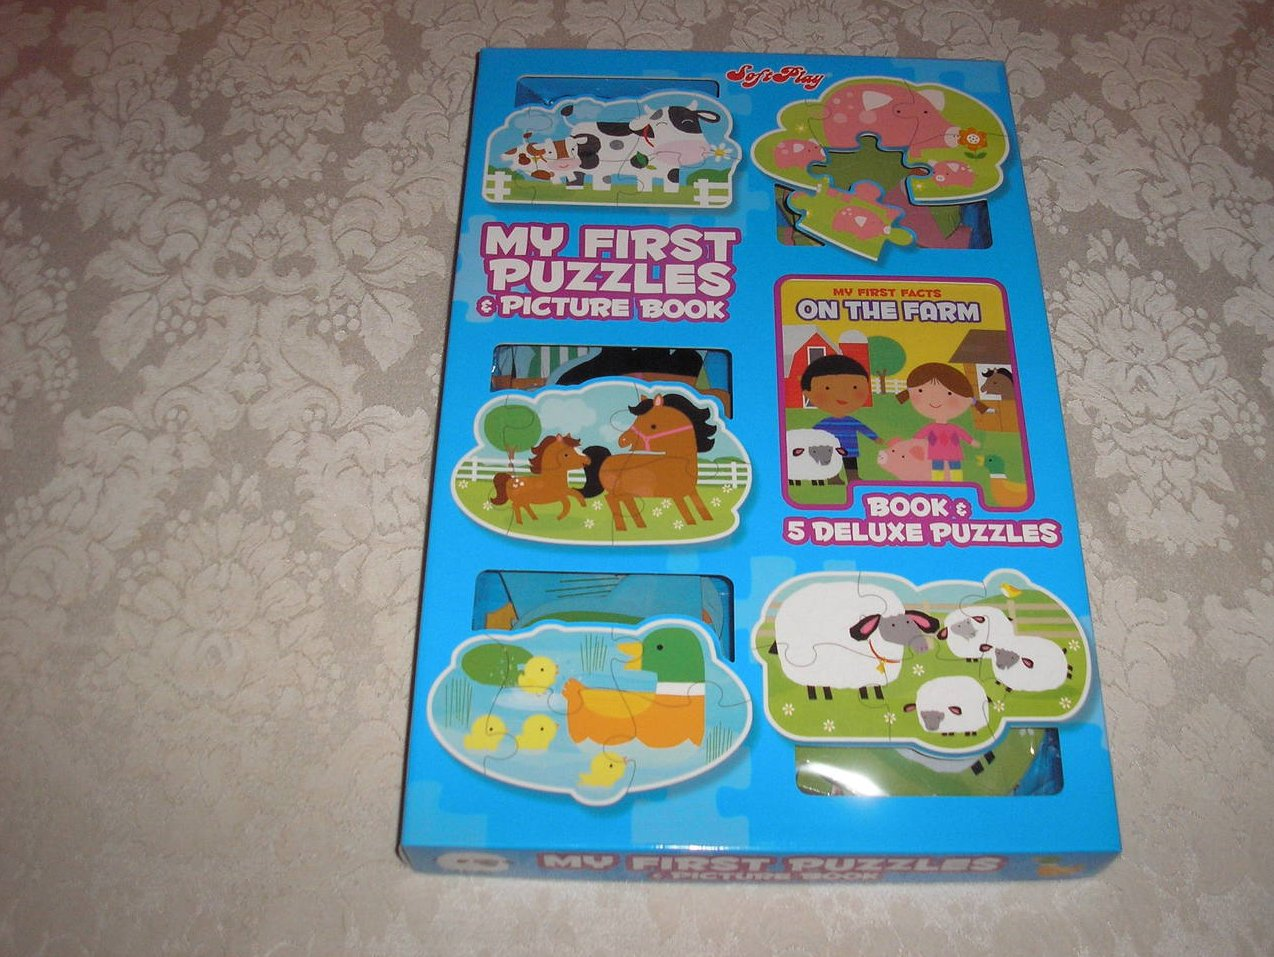 SoftPlay On The Farm My First Puzzles and Picture Book brand new boxed gift set